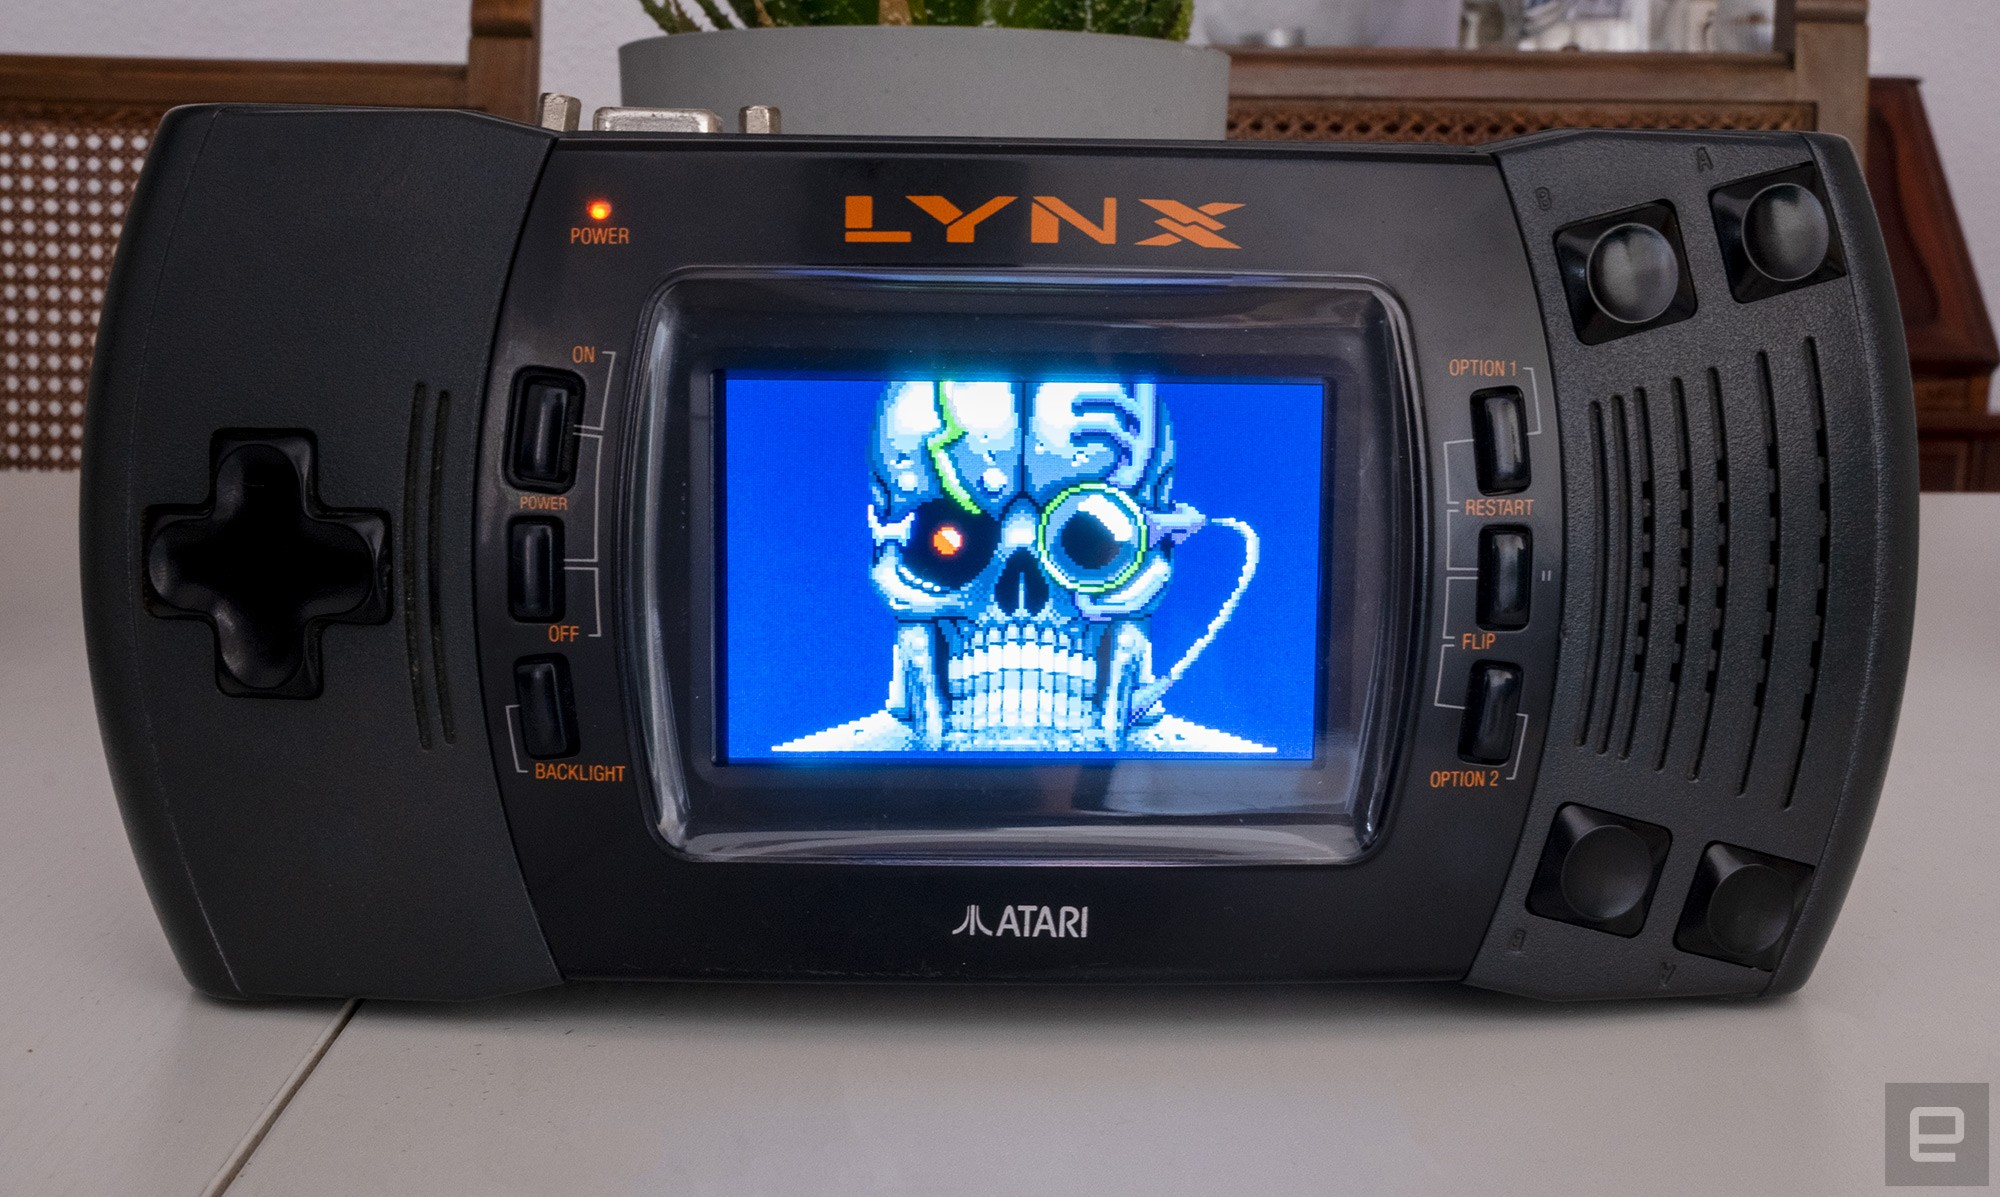 Cyber Virus - The Lost Missions, new Atari Lynx game.